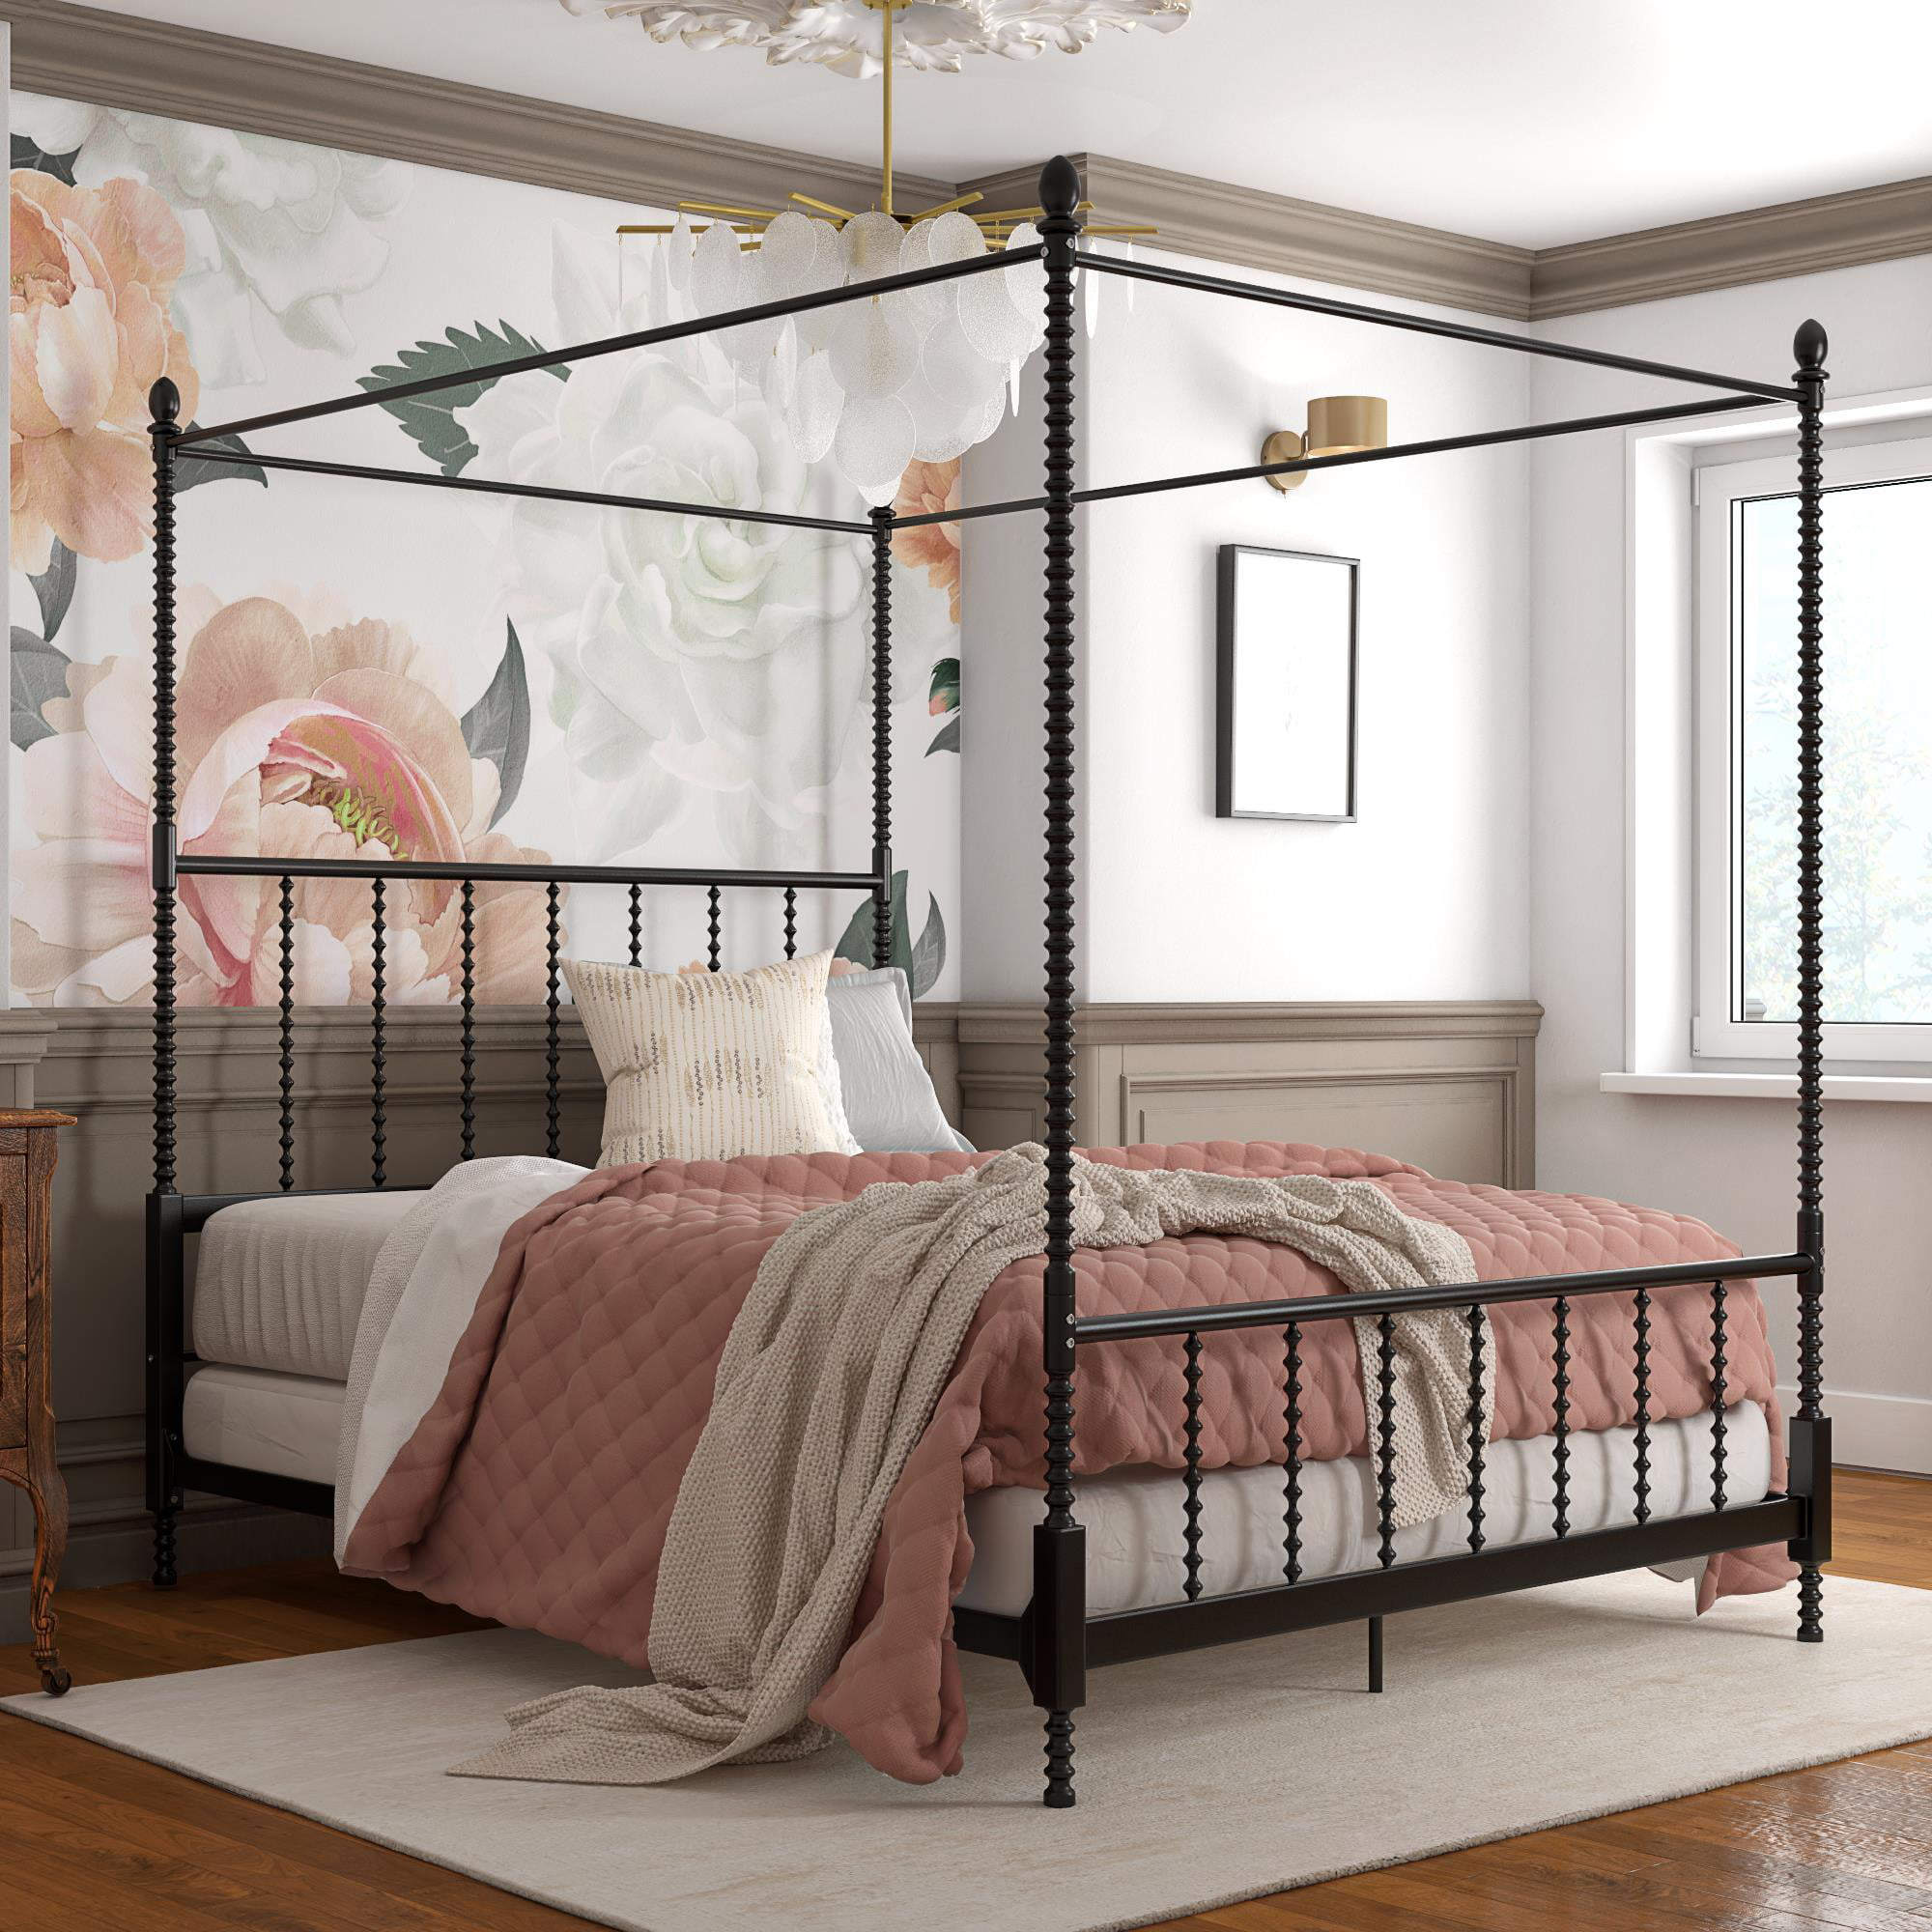 Pemberly Row Parisian Style Design Metal Canopy Bed In Queen Size Frame In Black Walmart Com Walmart Com